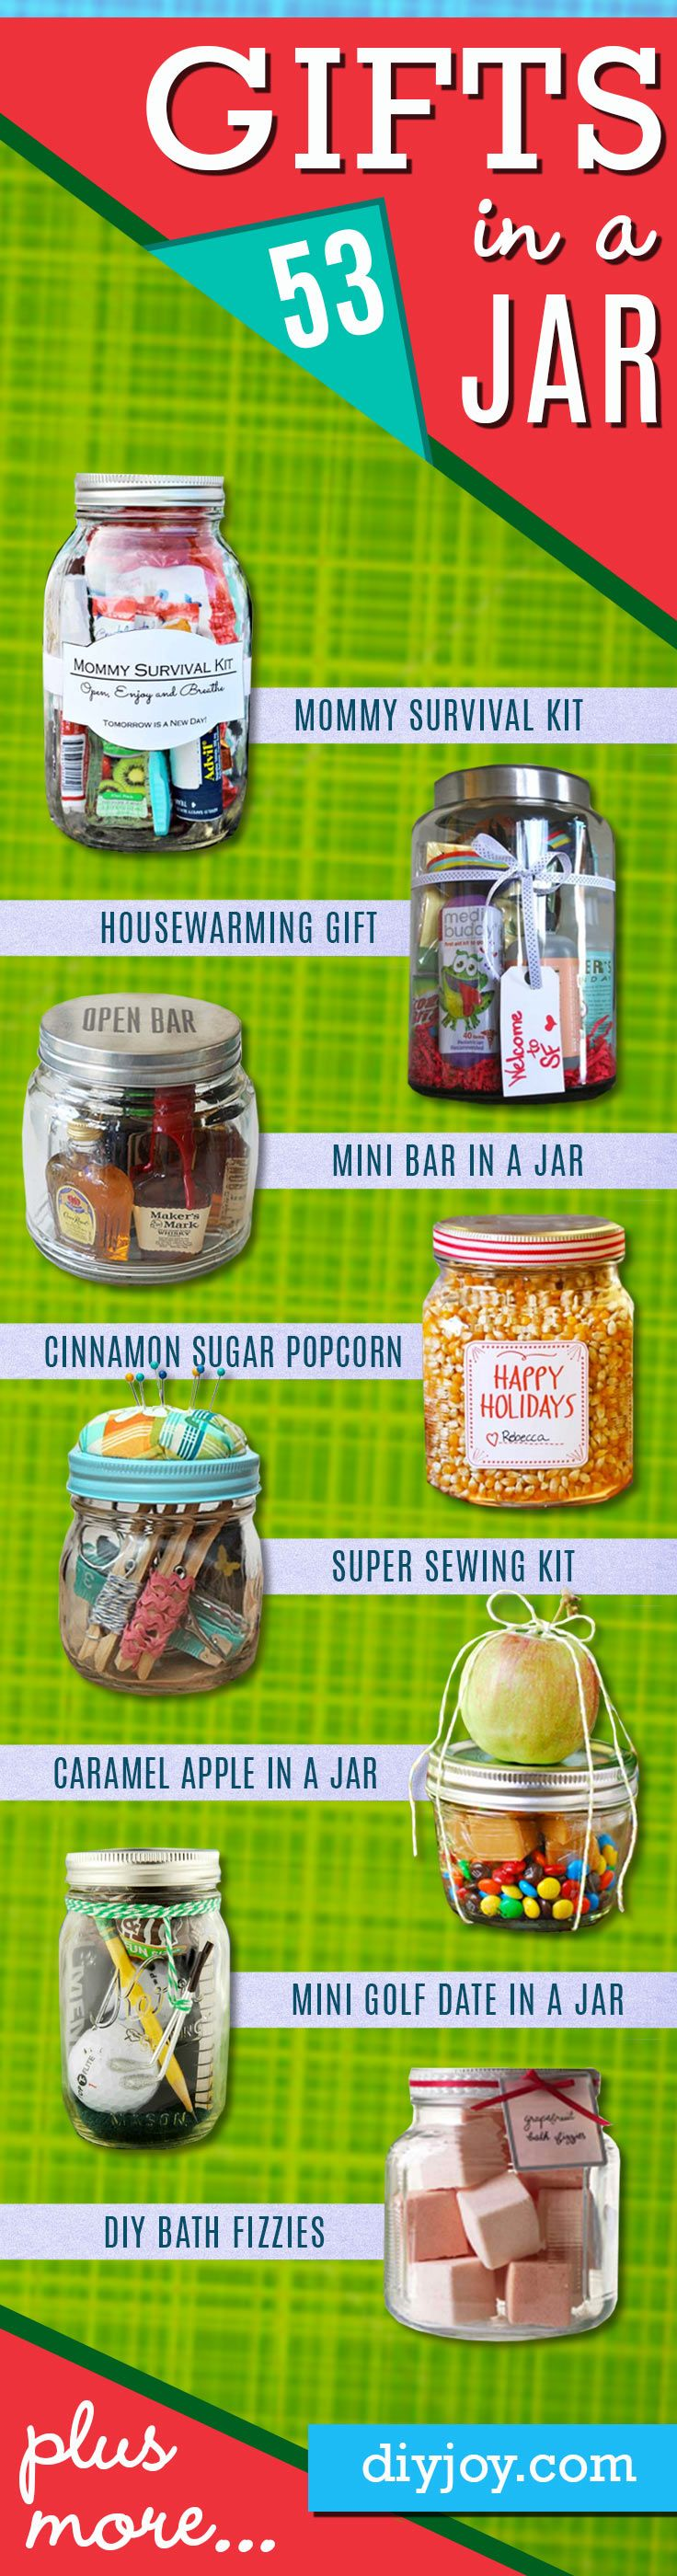 DIY Mason Jar Gifts and Ideas | Best Mason Jar Cookie Mixes and Recipes, Alcohol Mixers | Fun Gift Ideas for Men, Women, Teens, Kids, Teacher, Mom. Christmas, Holiday, Birthday and Easy Last Minute Gifts http://diyjoy.com/diy-gifts-in-a-jar